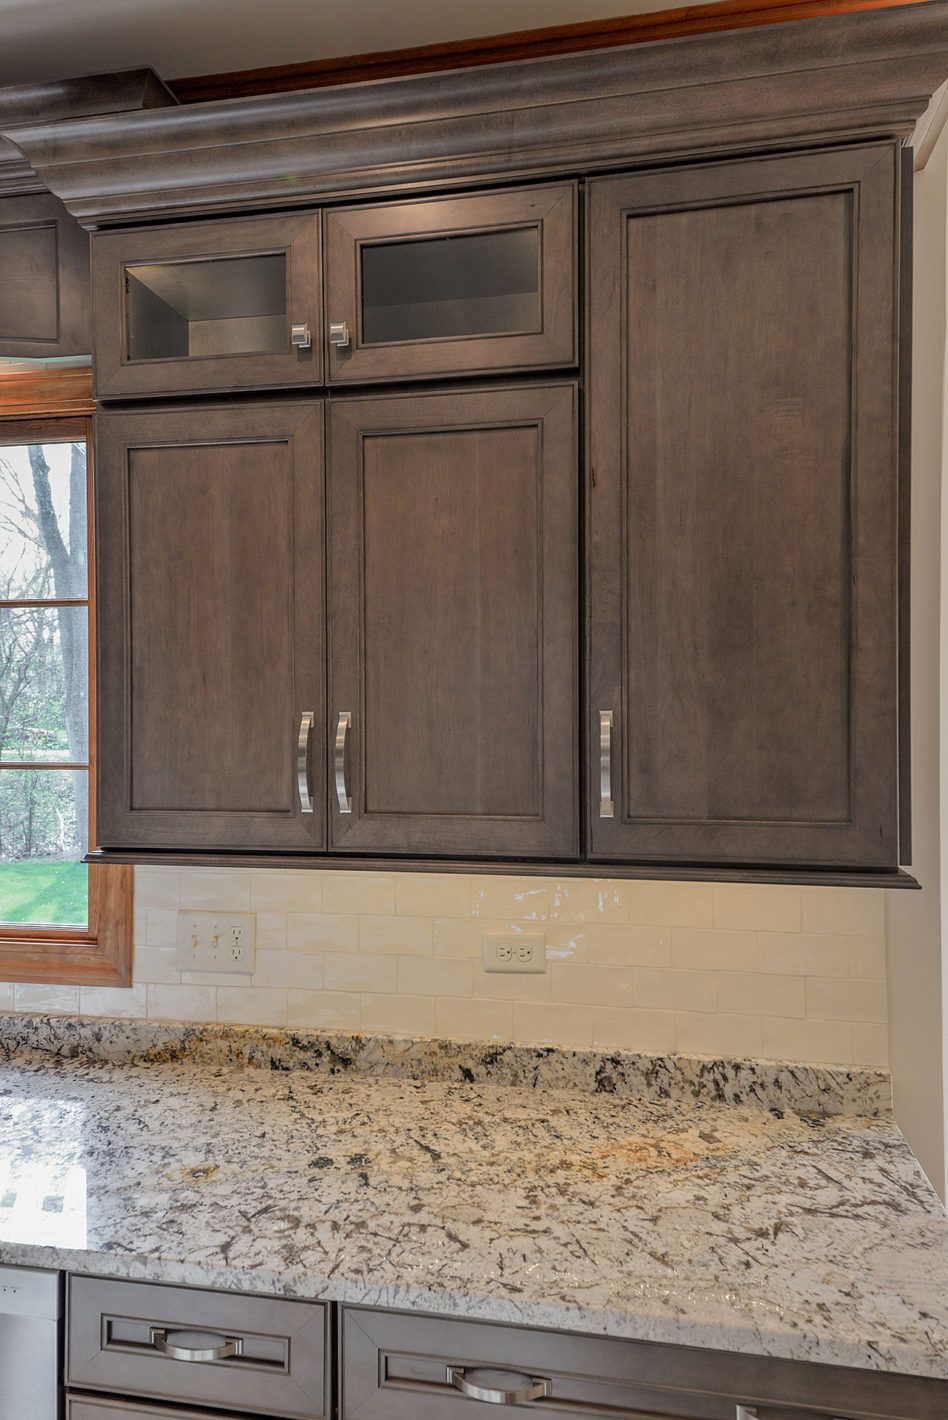 Glass Countertops Grey Stained Kitchen Cabinets Lighting Flooring - Light grey stained kitchen cabinets